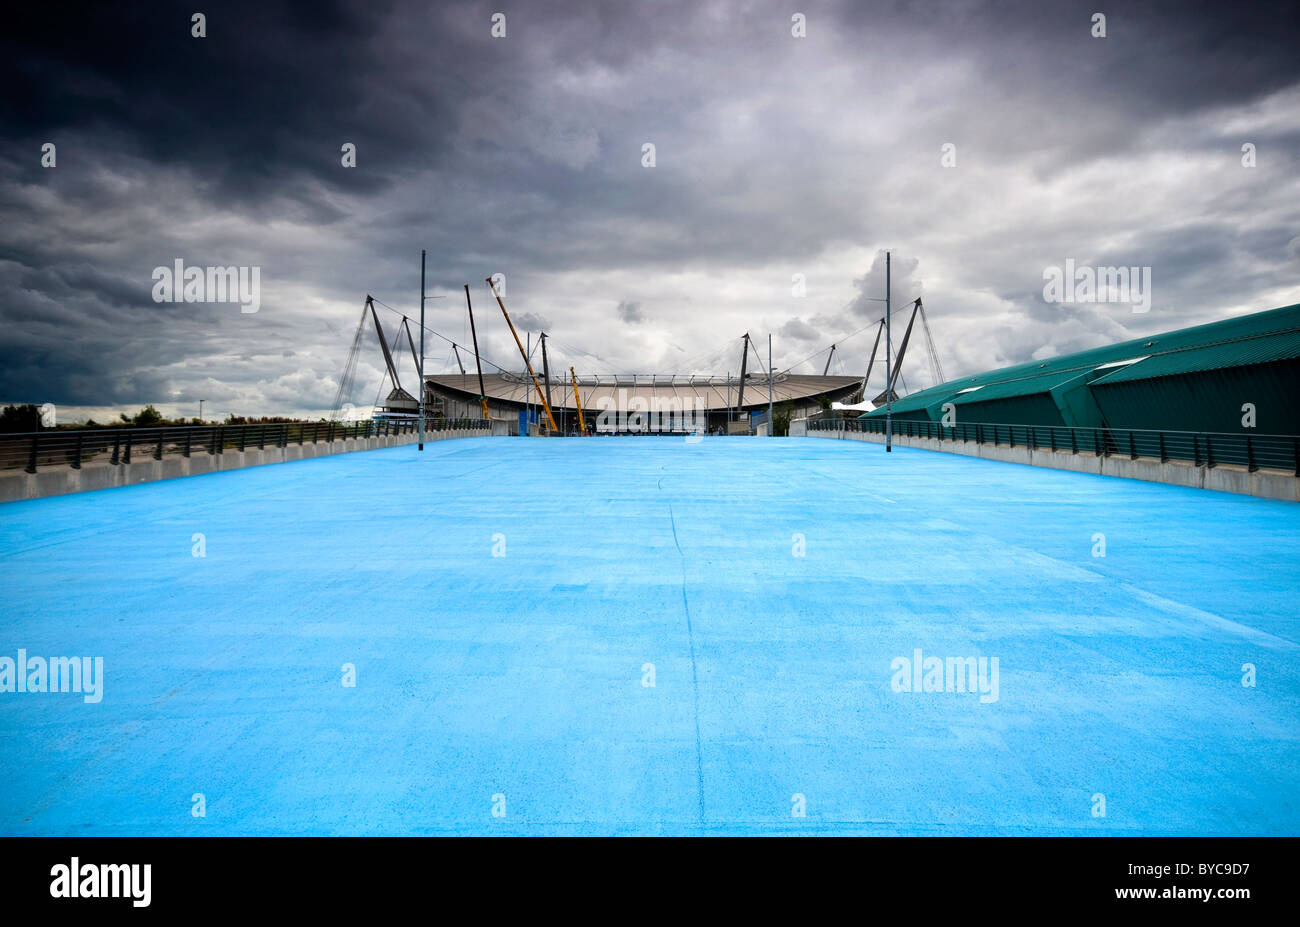 Manchester City's Etihad football stadium in England viewed from Joe Mercer Way - Stock Image